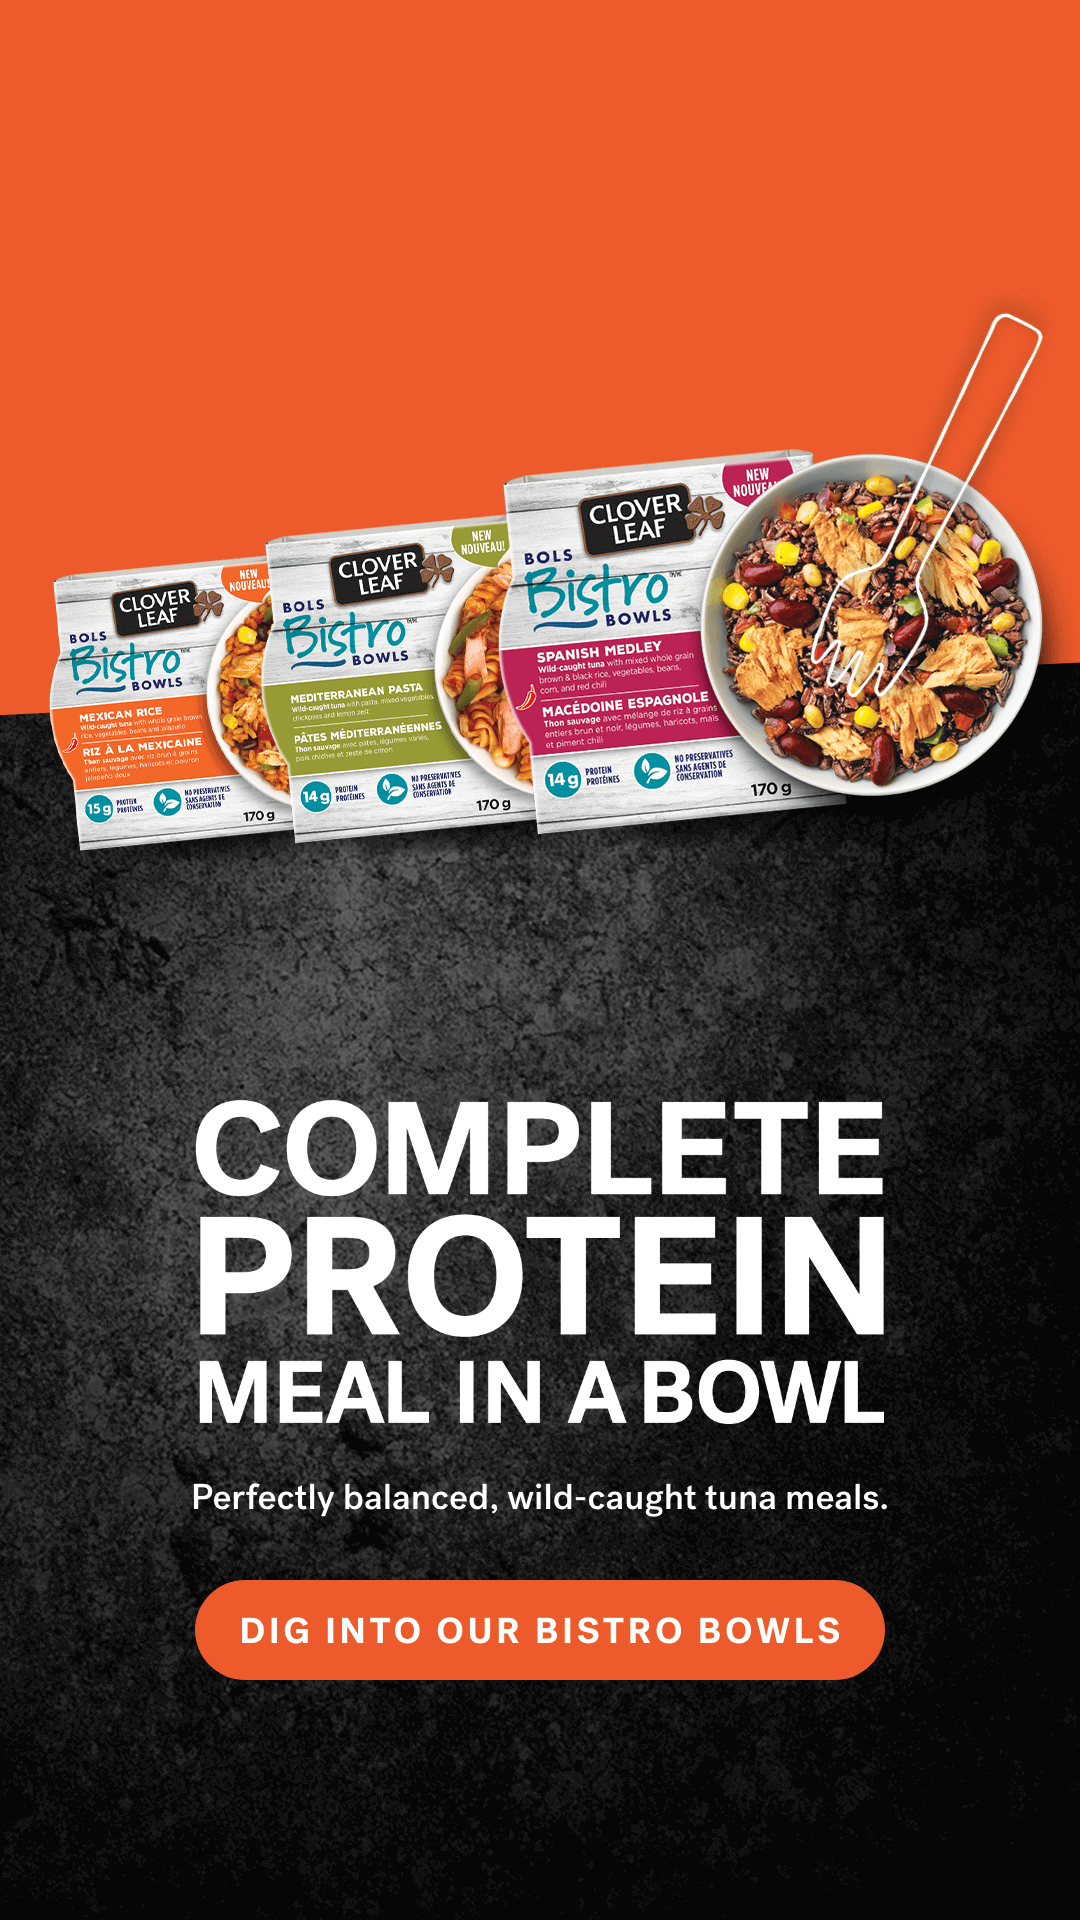 Complete protein meal in a bowl. Perfectly balanced, wild-caught tuna meals. DIG INTO OUR Bistro Bowls.